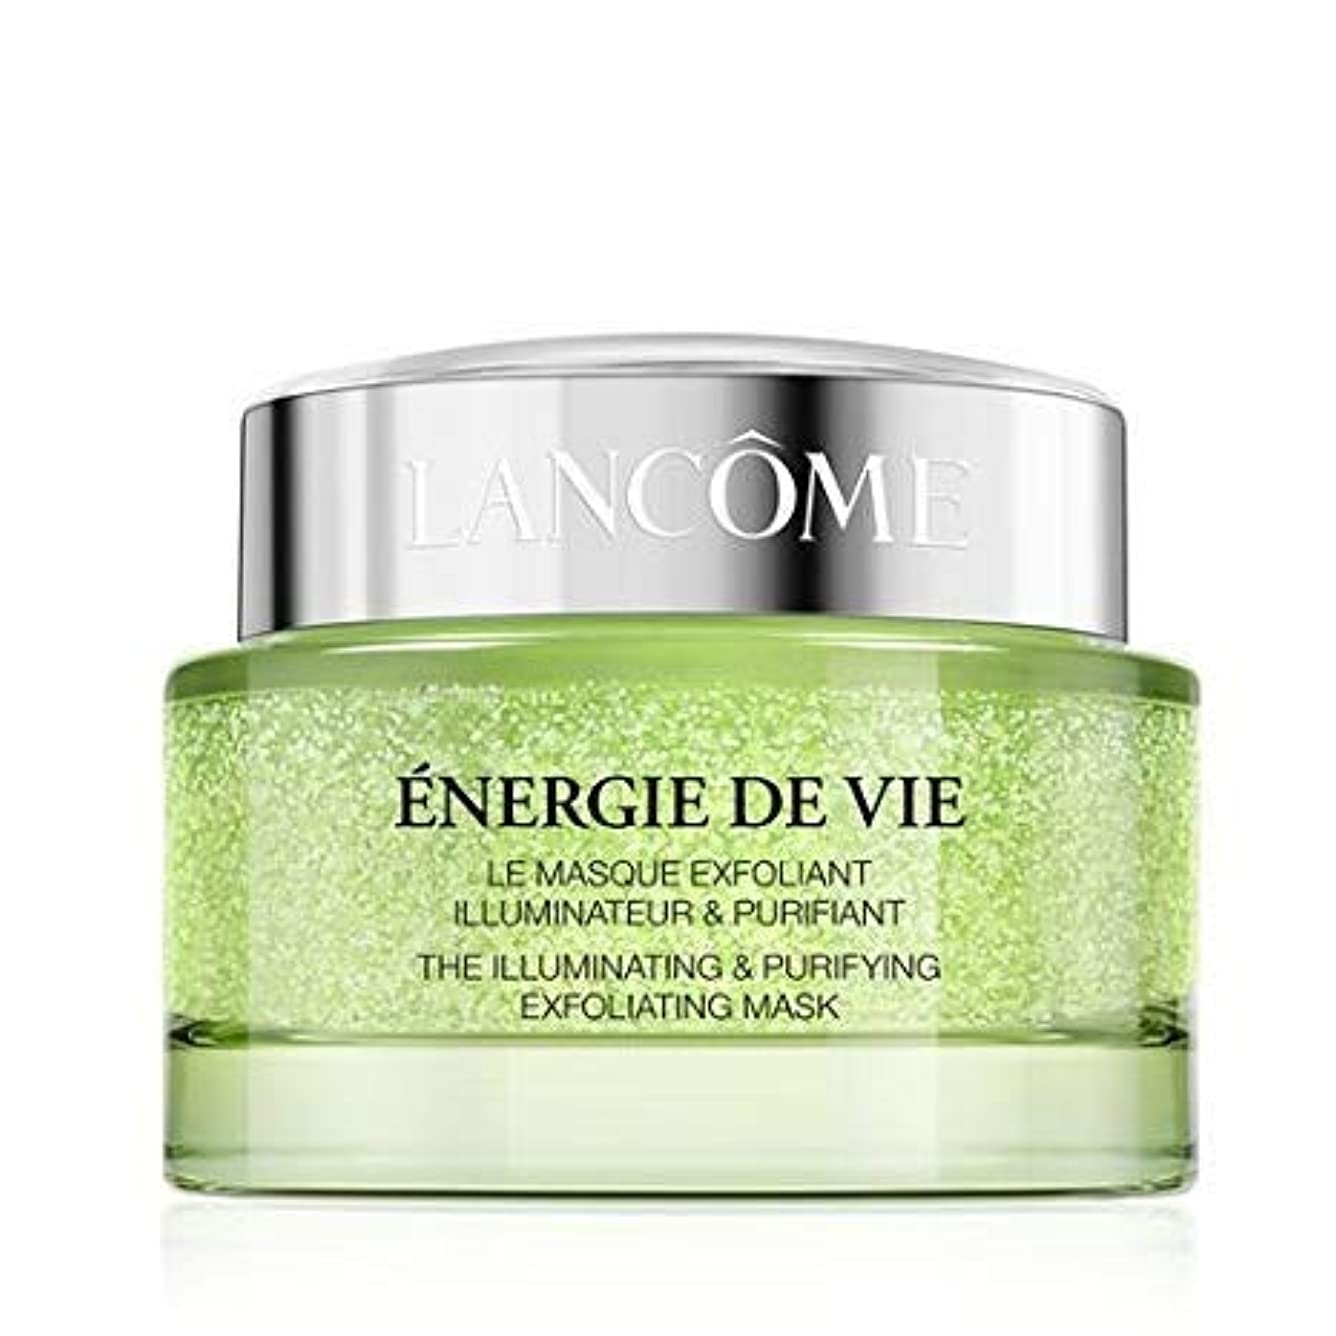 ランコム Energie De Vie The Illuminating & Purifying Exfoliating Mask 75ml